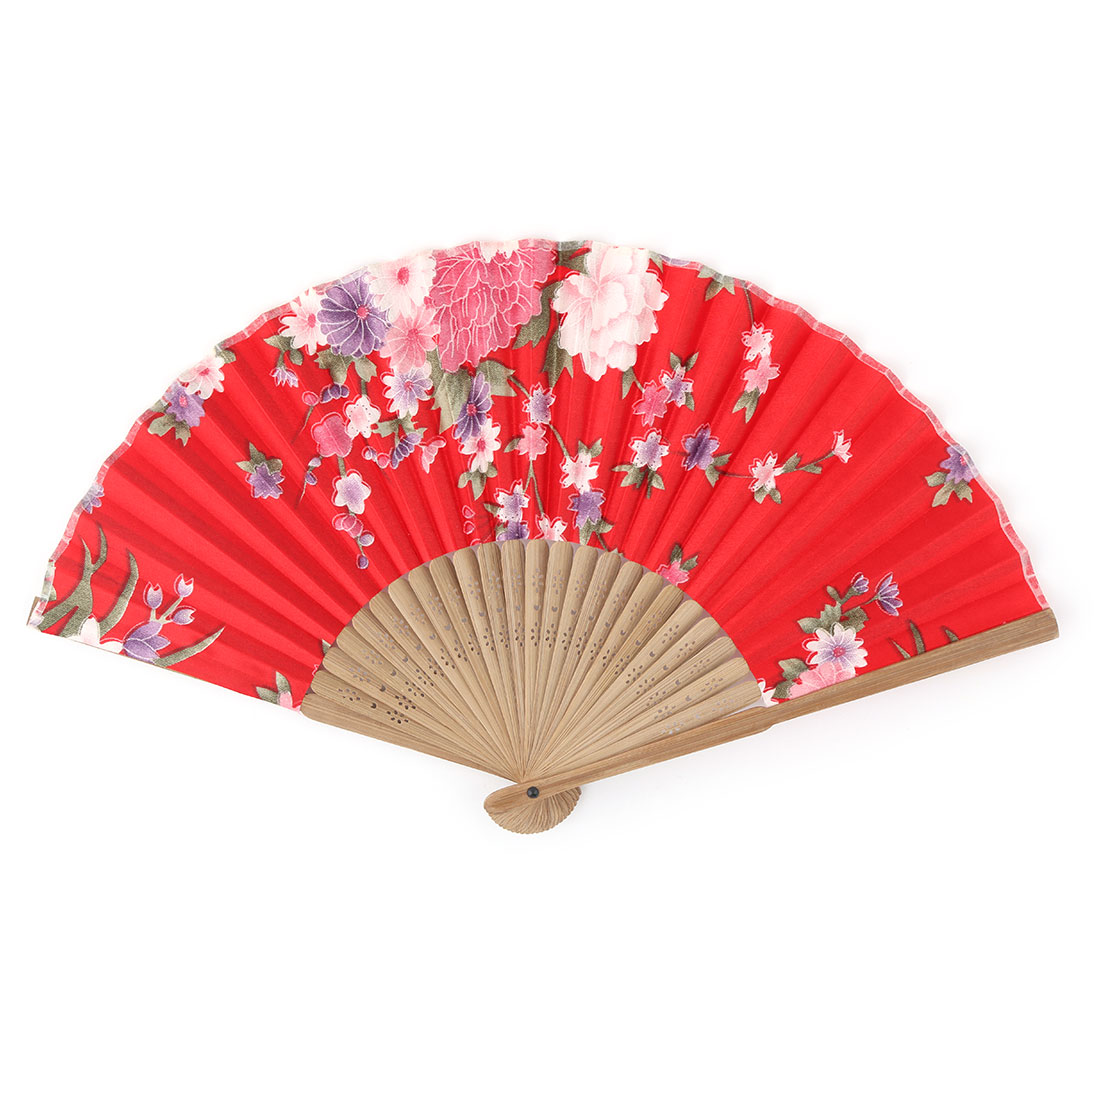 Home Bamboo Frame Peony Flower Printed Craft Ornament Handheld Foldable Hand Fan